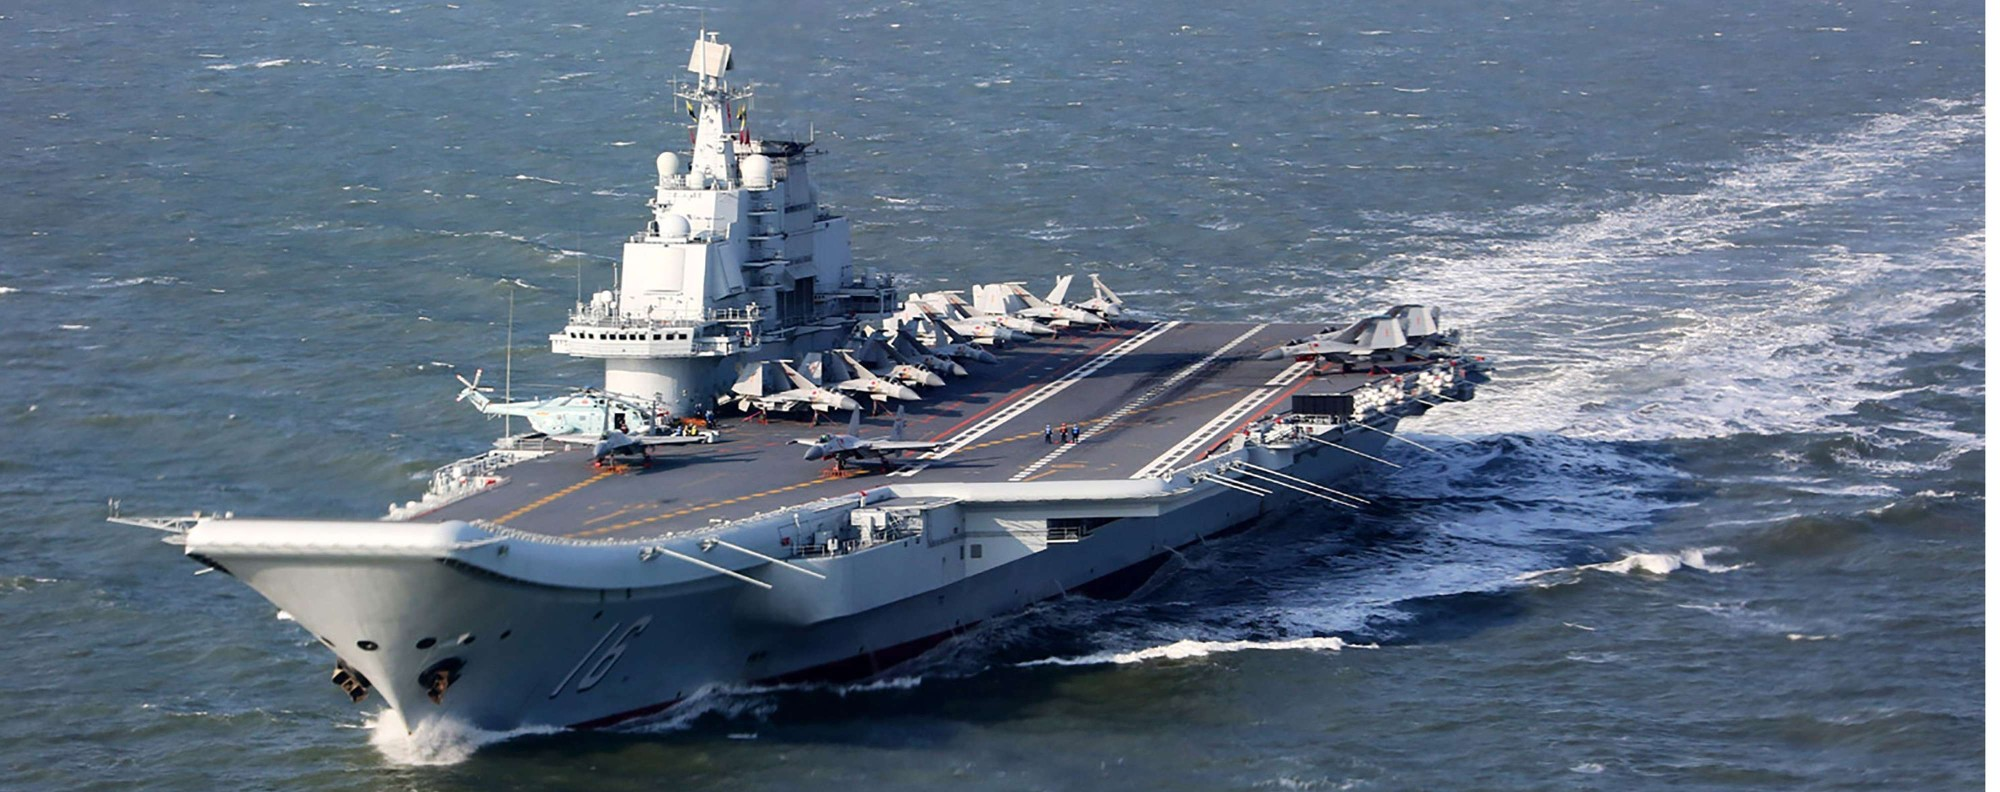 The Liaoning, China's only aircraft carrier. Photo: AFP